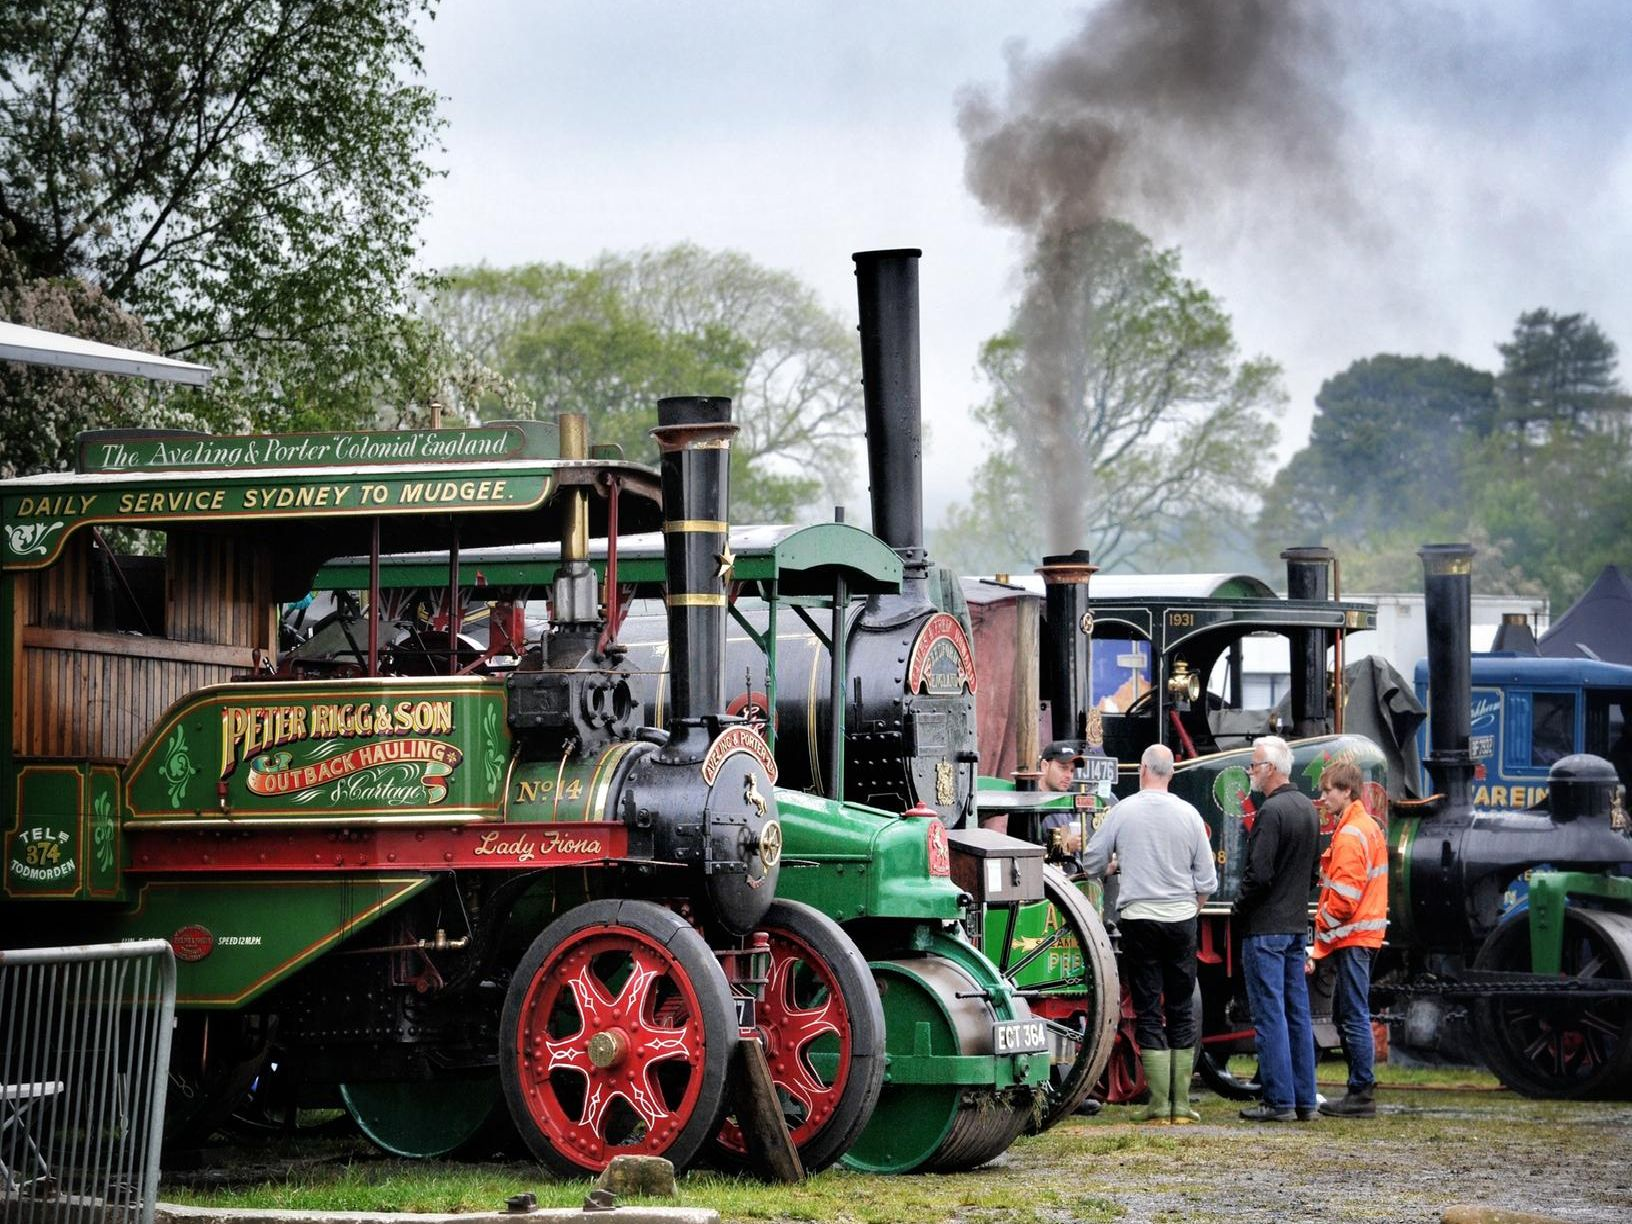 Some of the steam engines on display. Photo by Julian Brown